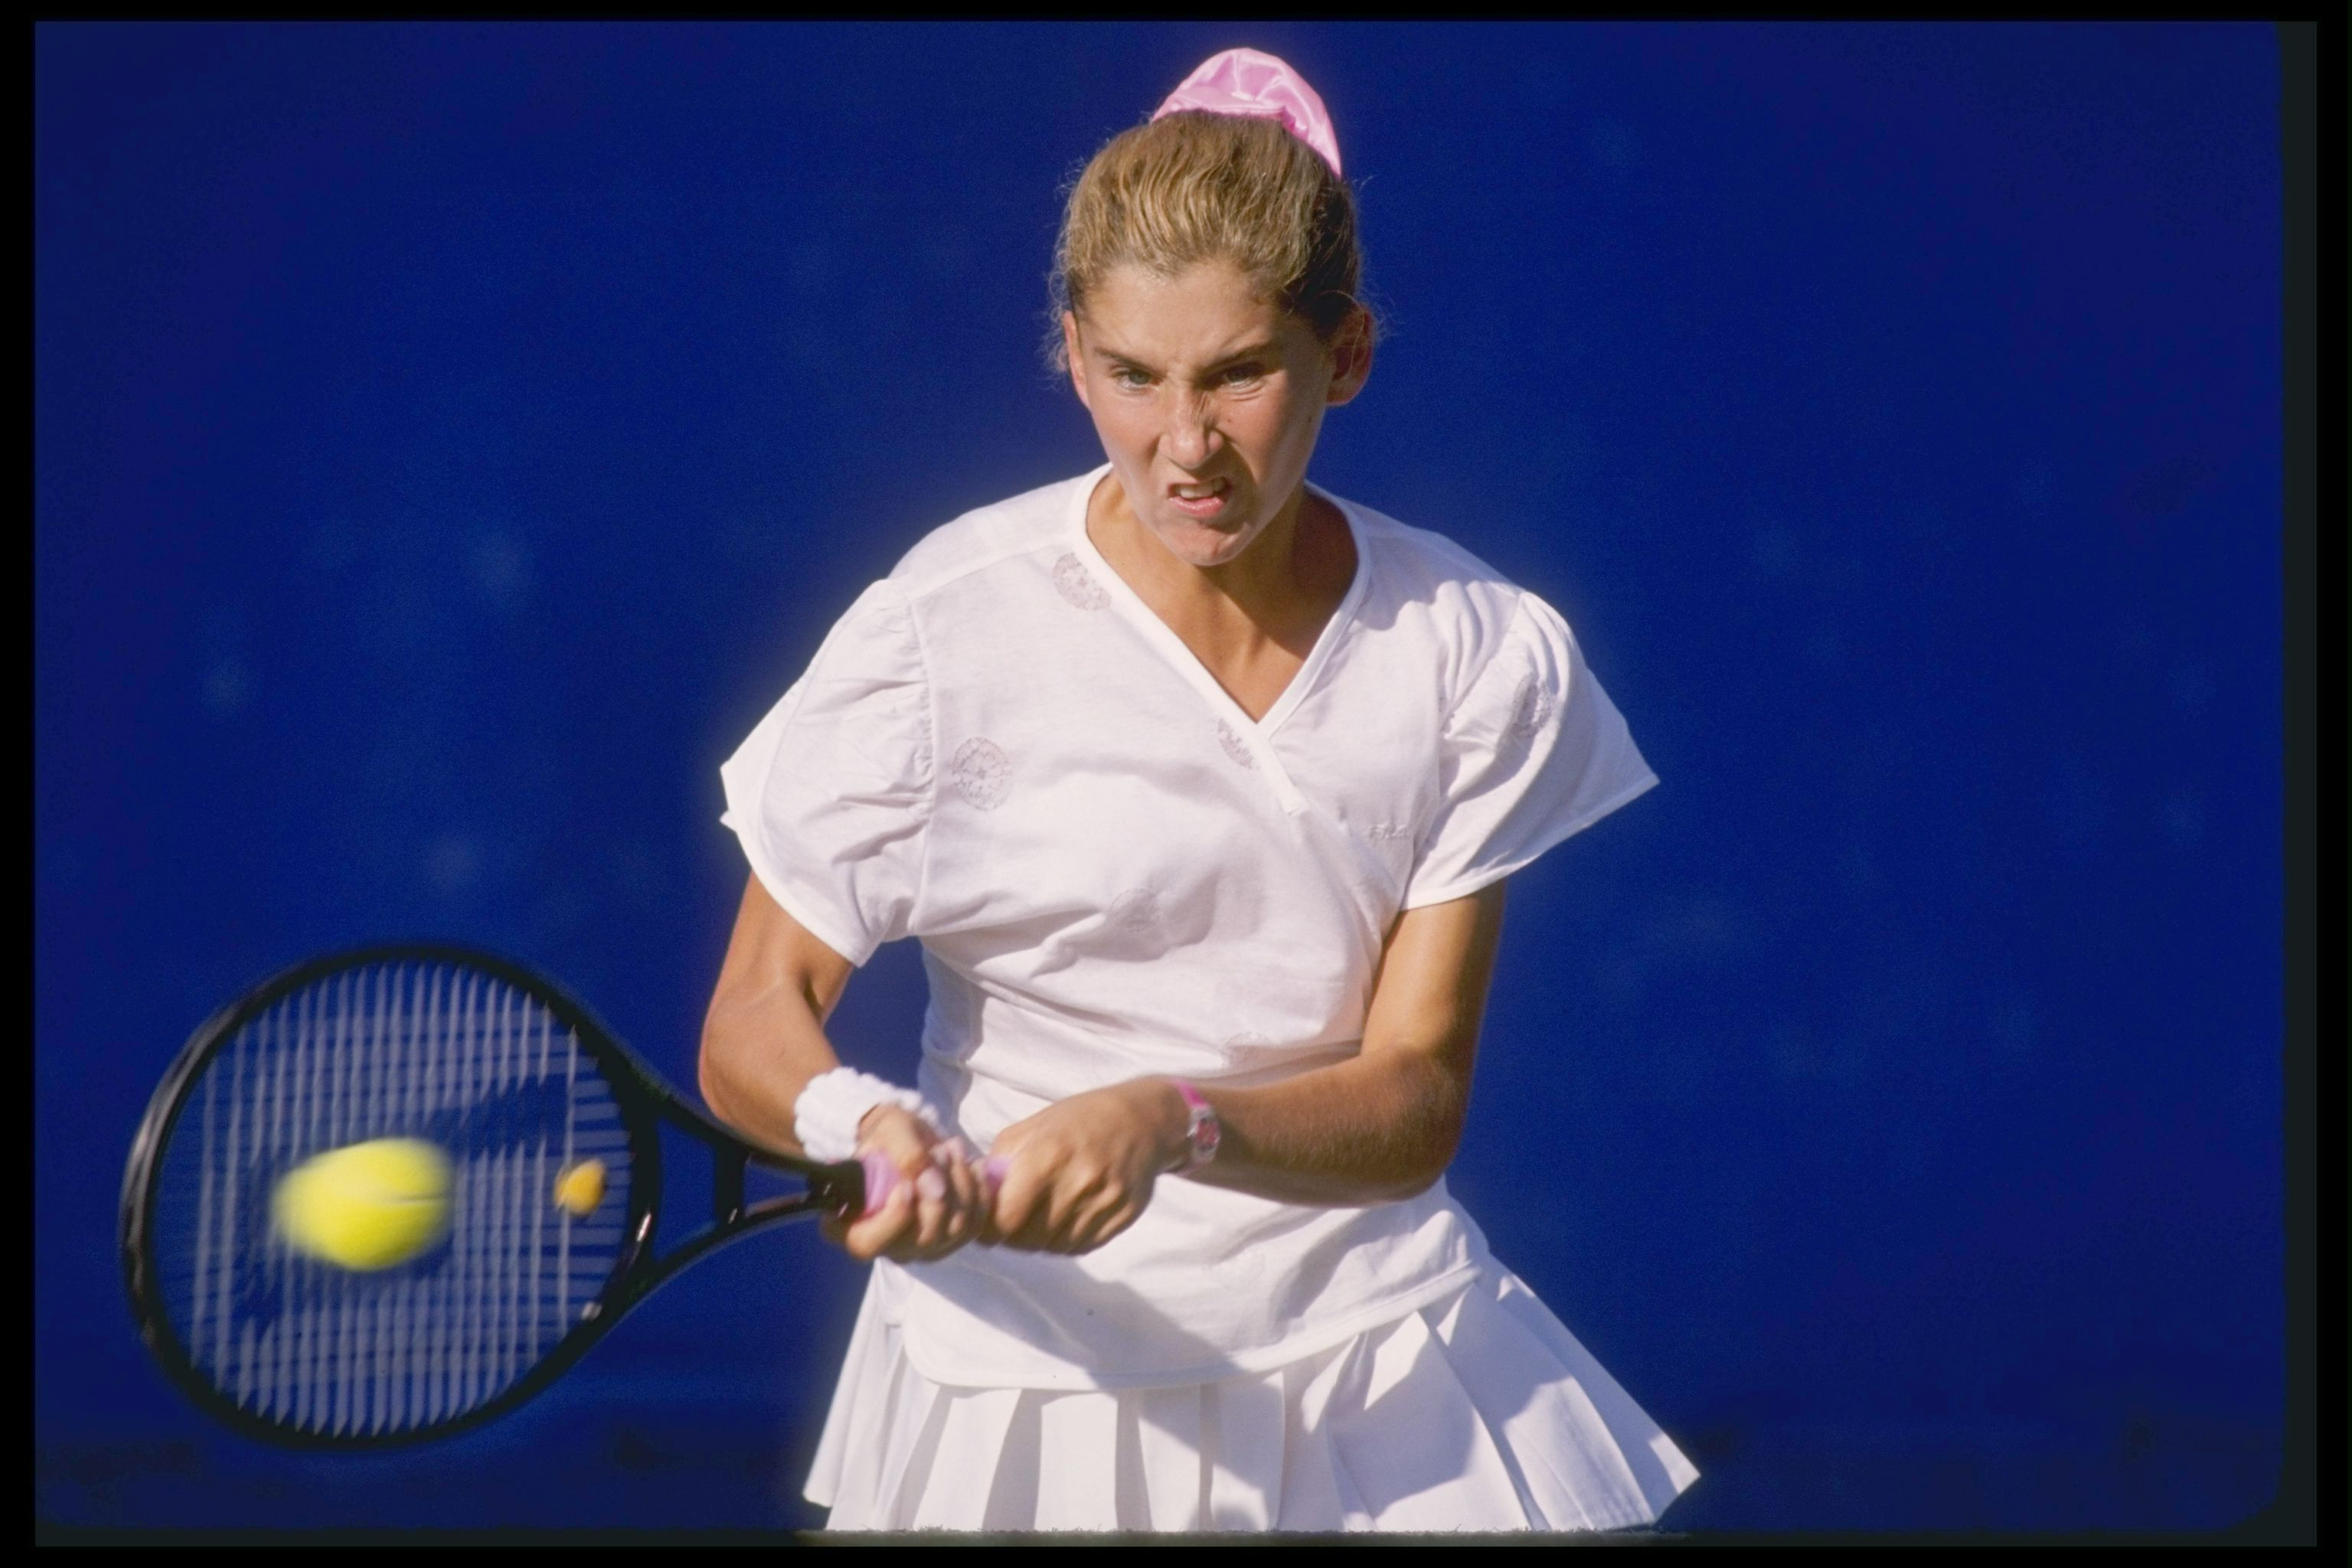 Women and Tennis in America Historical Roots